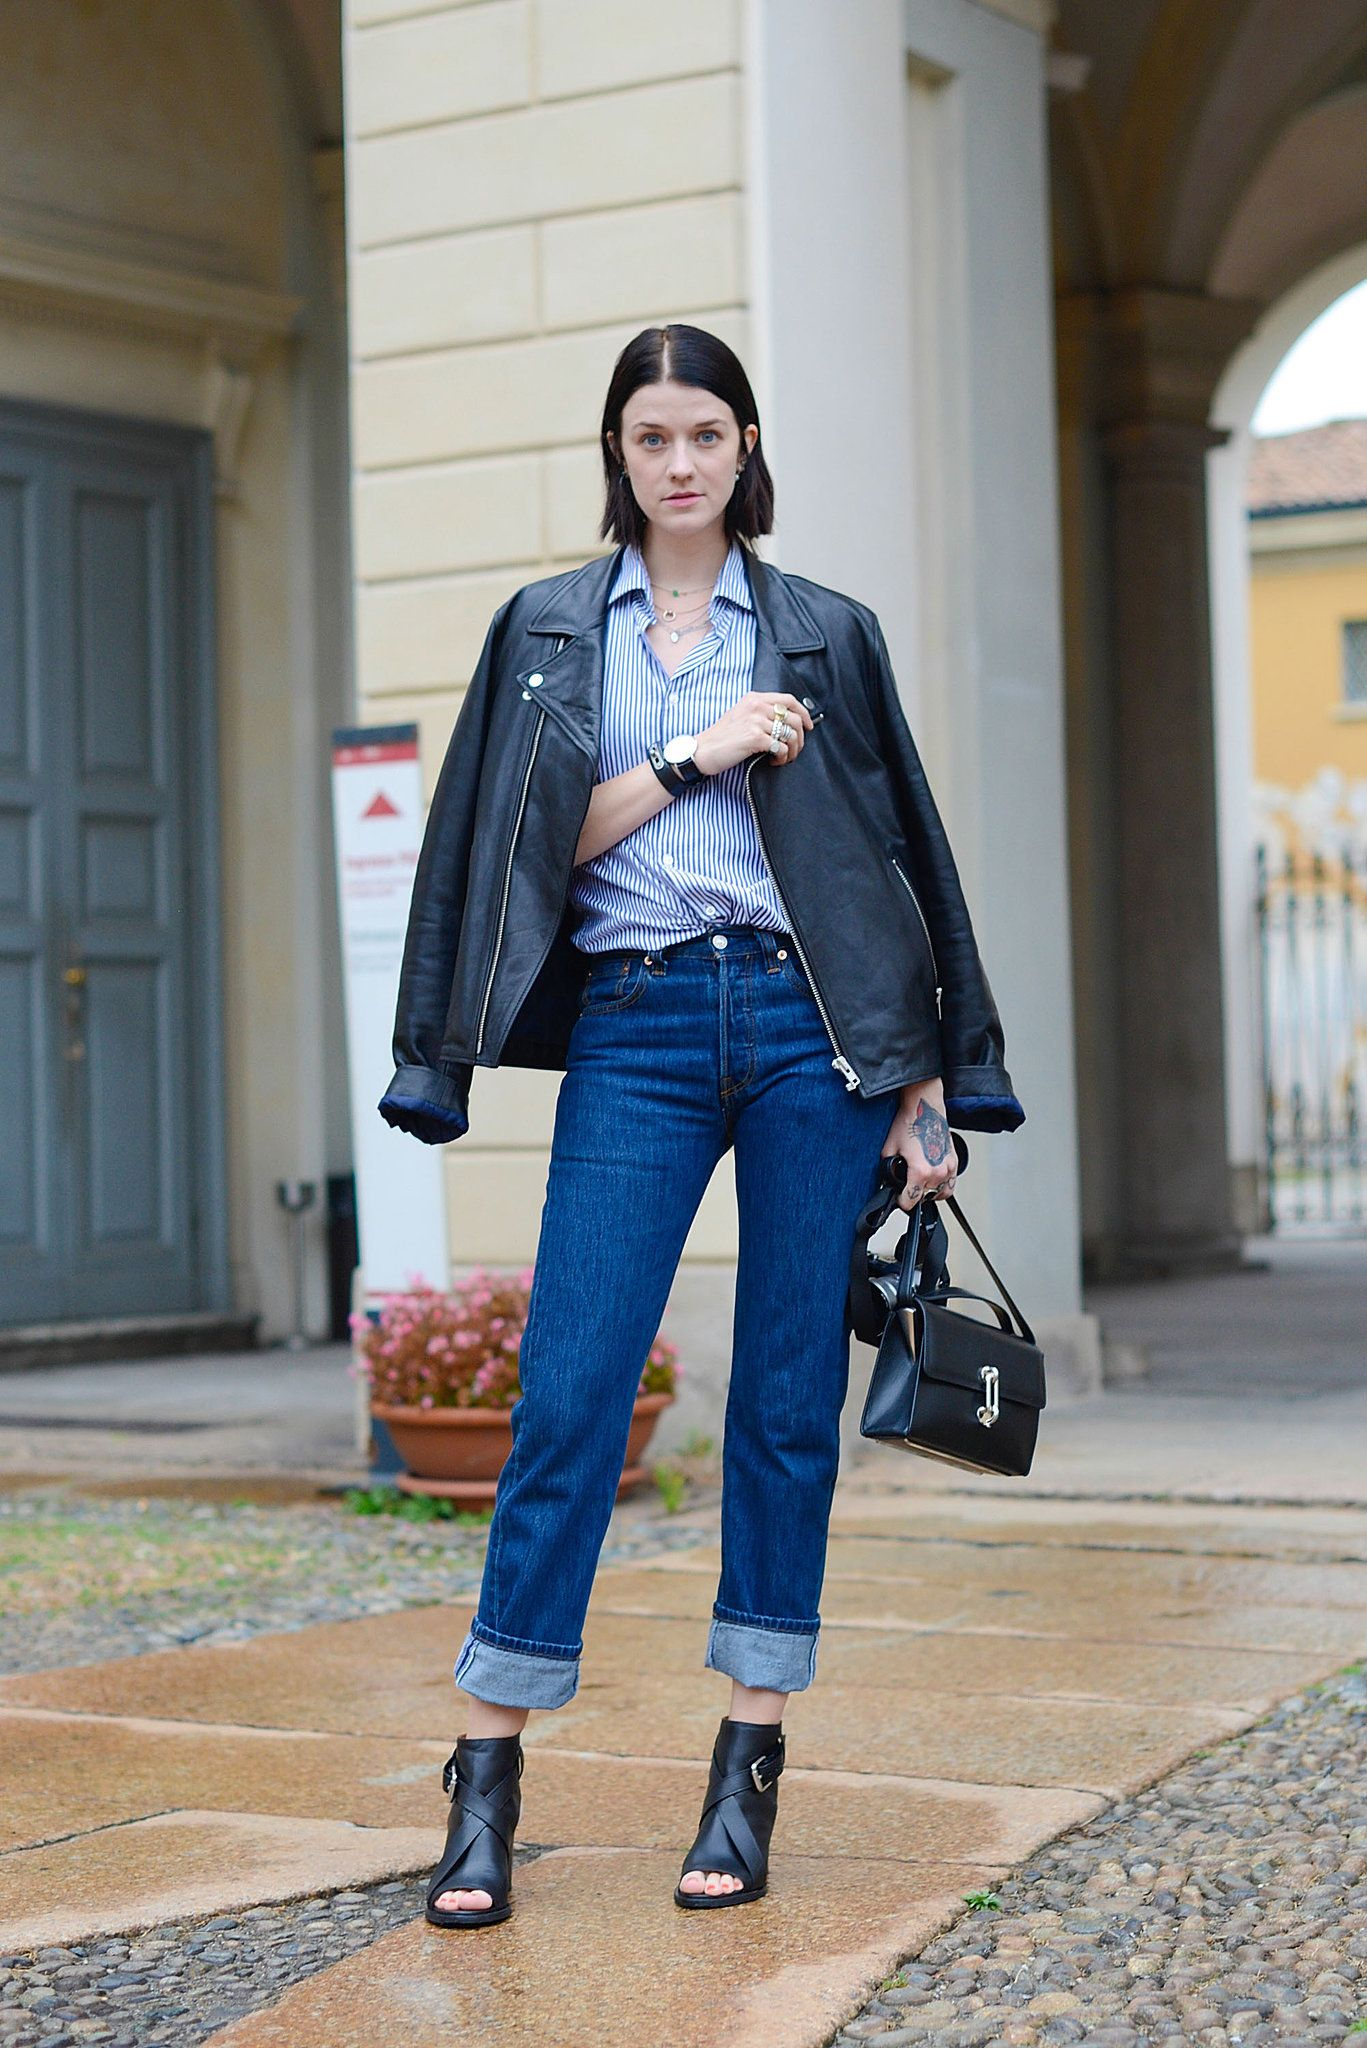 """Now's the time to get away with jeans at the office. Instead of channeling your inner teenager, make them feel 9-to-5 polished with a silky blouse and blazer. And don't forget your pumps or pointy flats for a look that says """"I can hang with the grown-ups — I'm just a lot more stylish."""""""